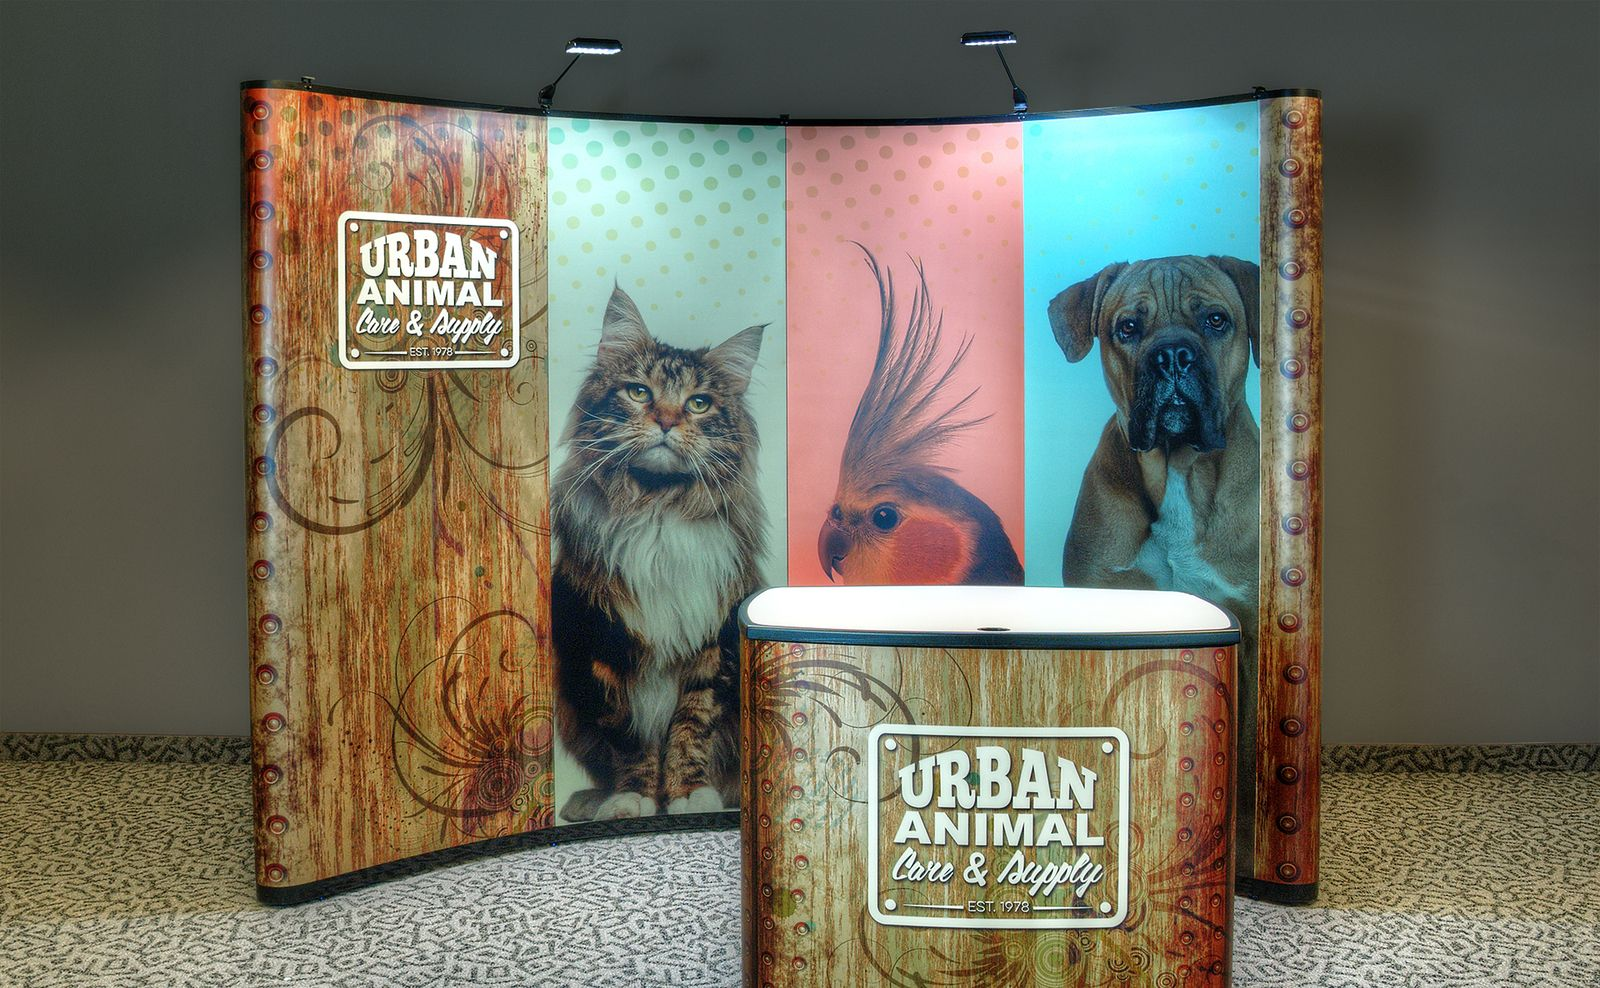 Exhibit Design Ideas & Inspiration - Trade Show Displays | Pitching ...